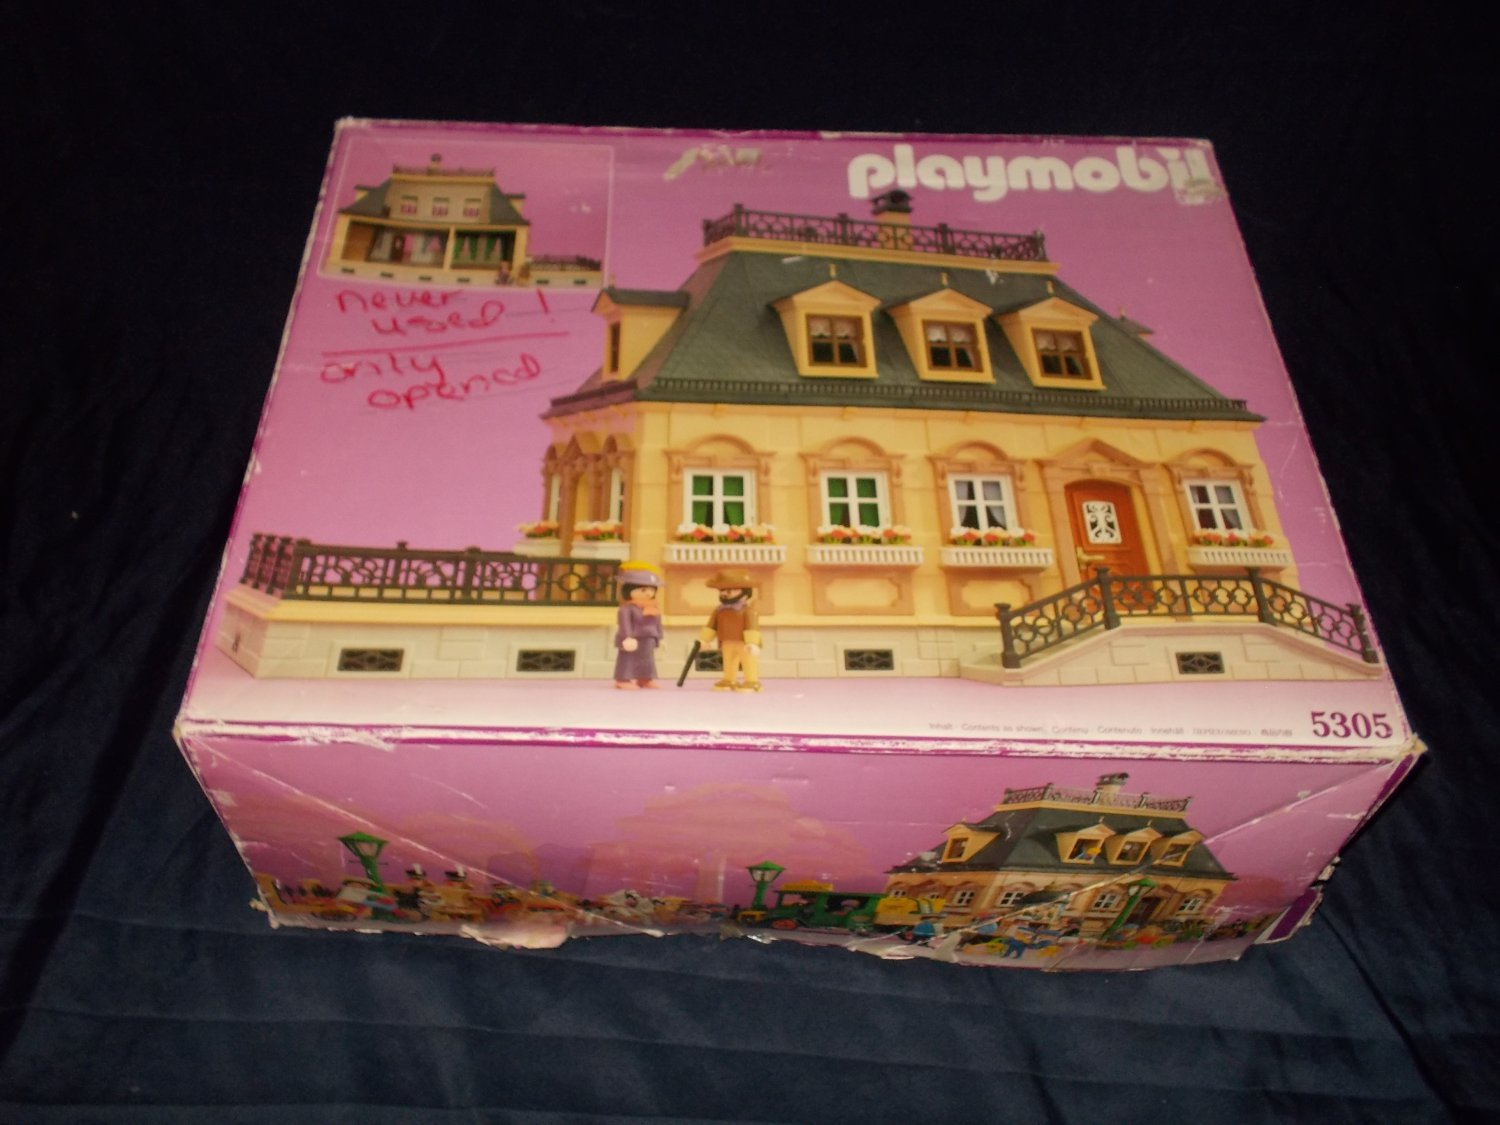 Dollhouse Playmobil Vintage 1990 Playmobil Victorian Mansion Dollhouse 5305 Complete